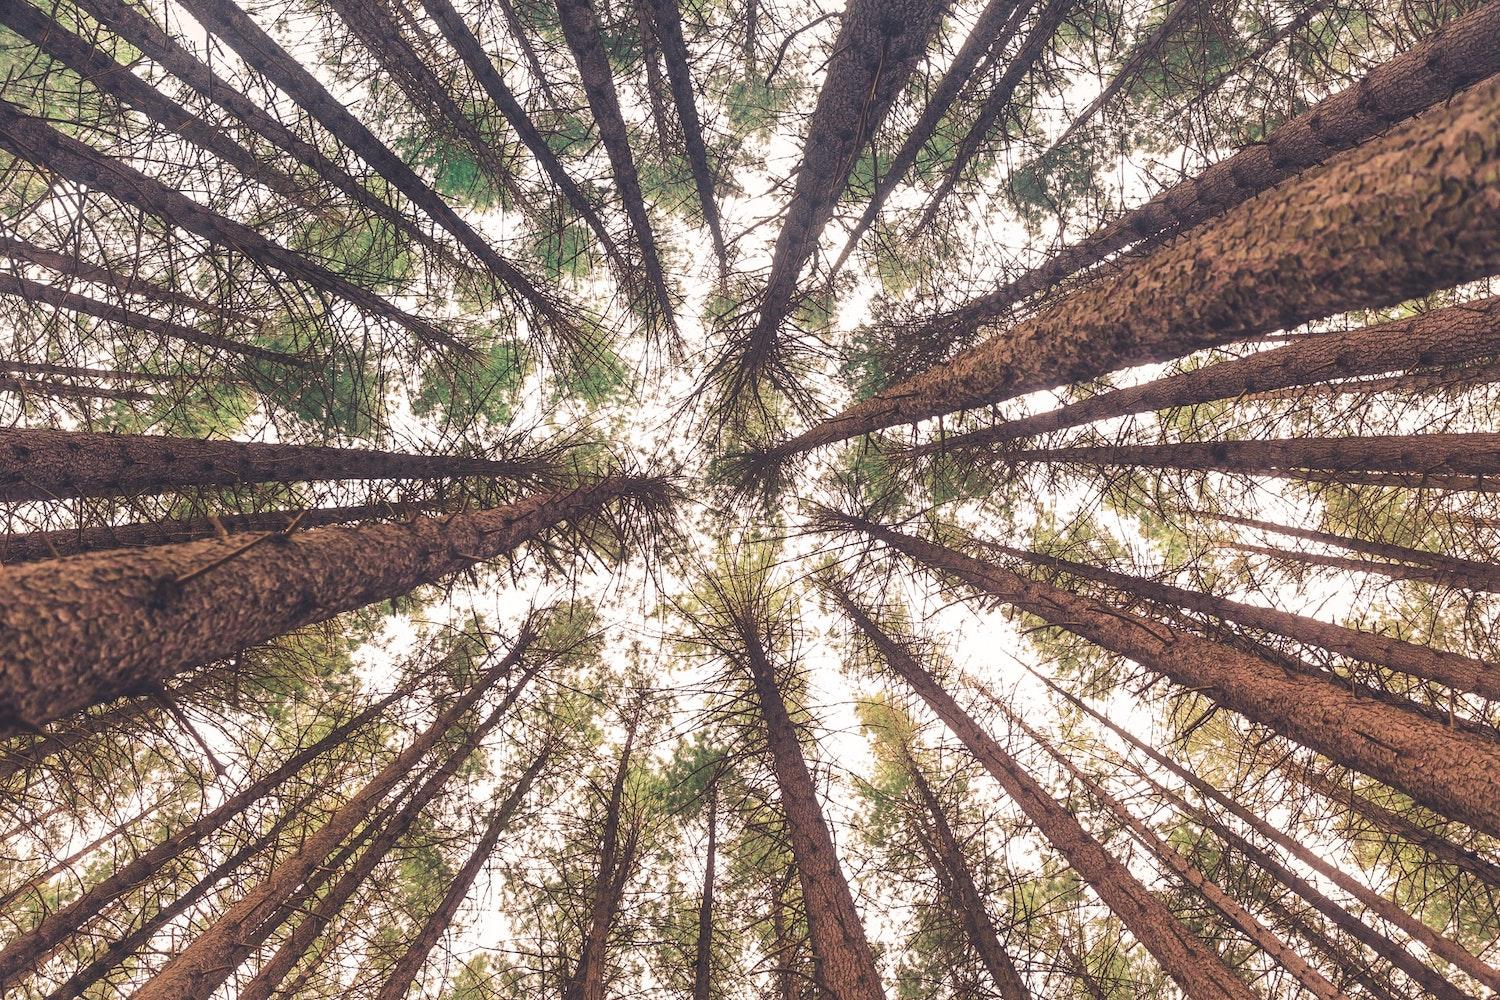 forests and sustainable forestry